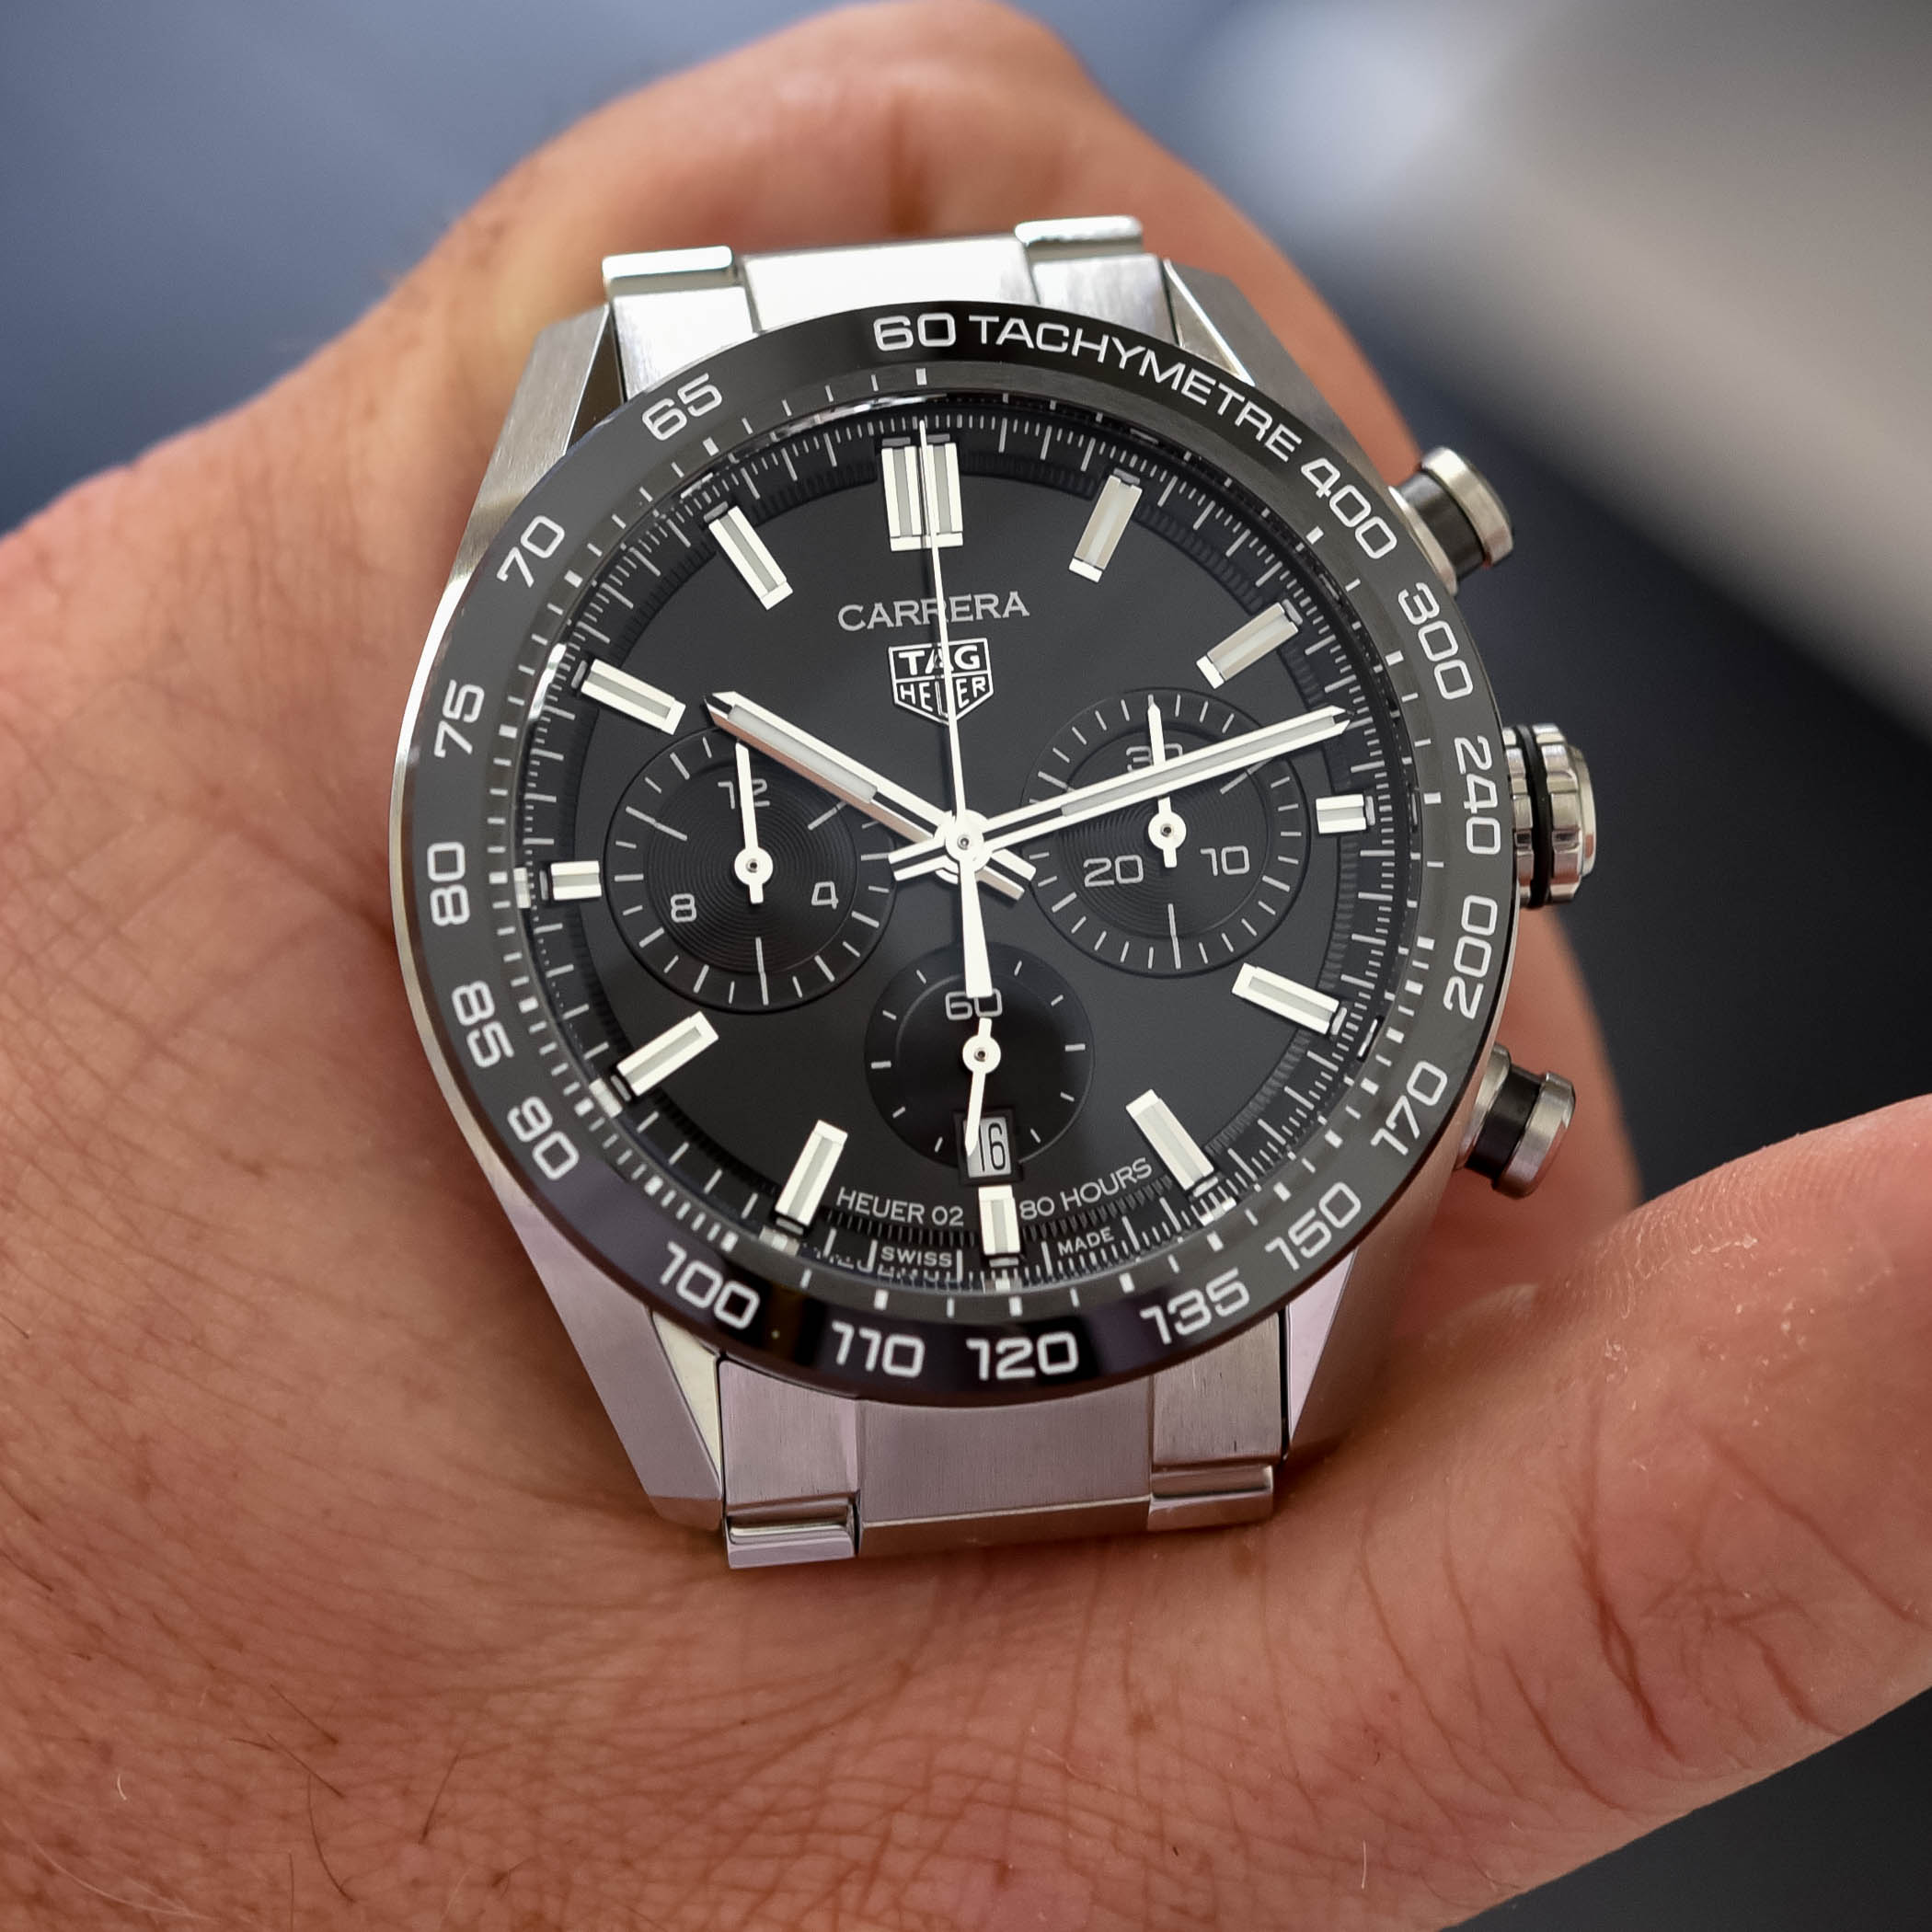 2020 TAG Heuer Carrera Sport Chronograph 44mm Collection - 7